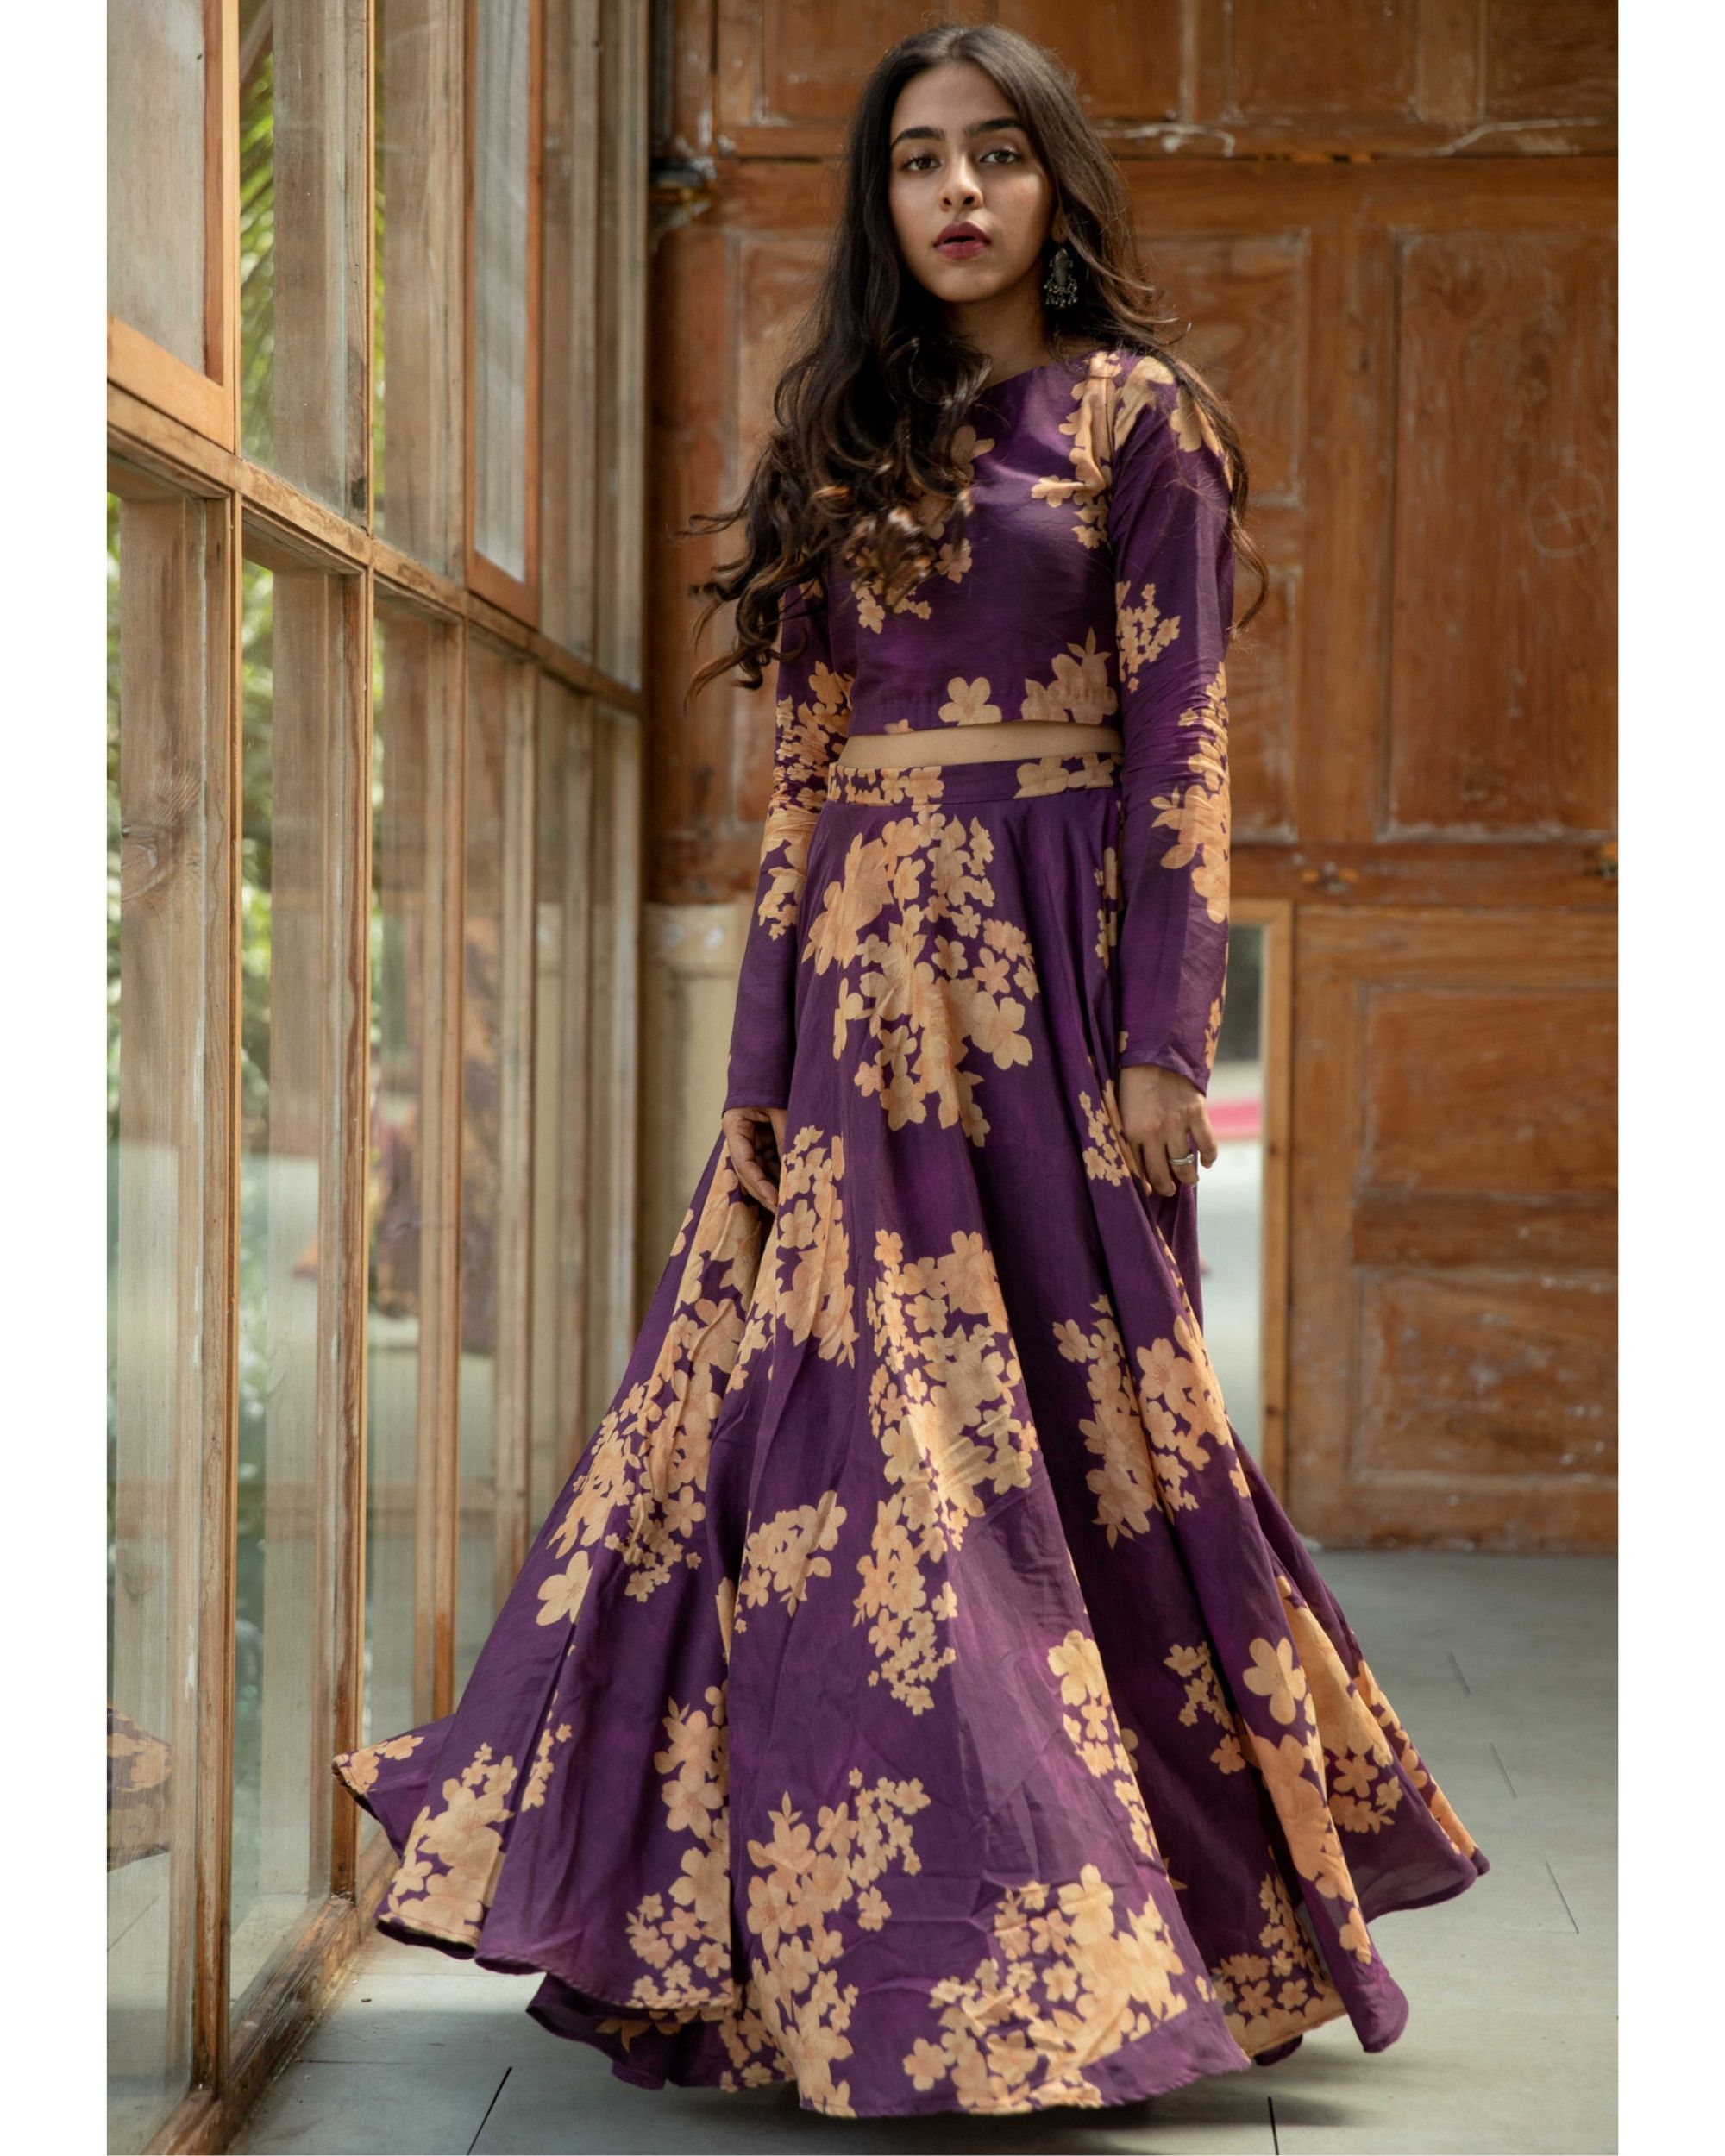 Purple floral crop top and skirt - set of two